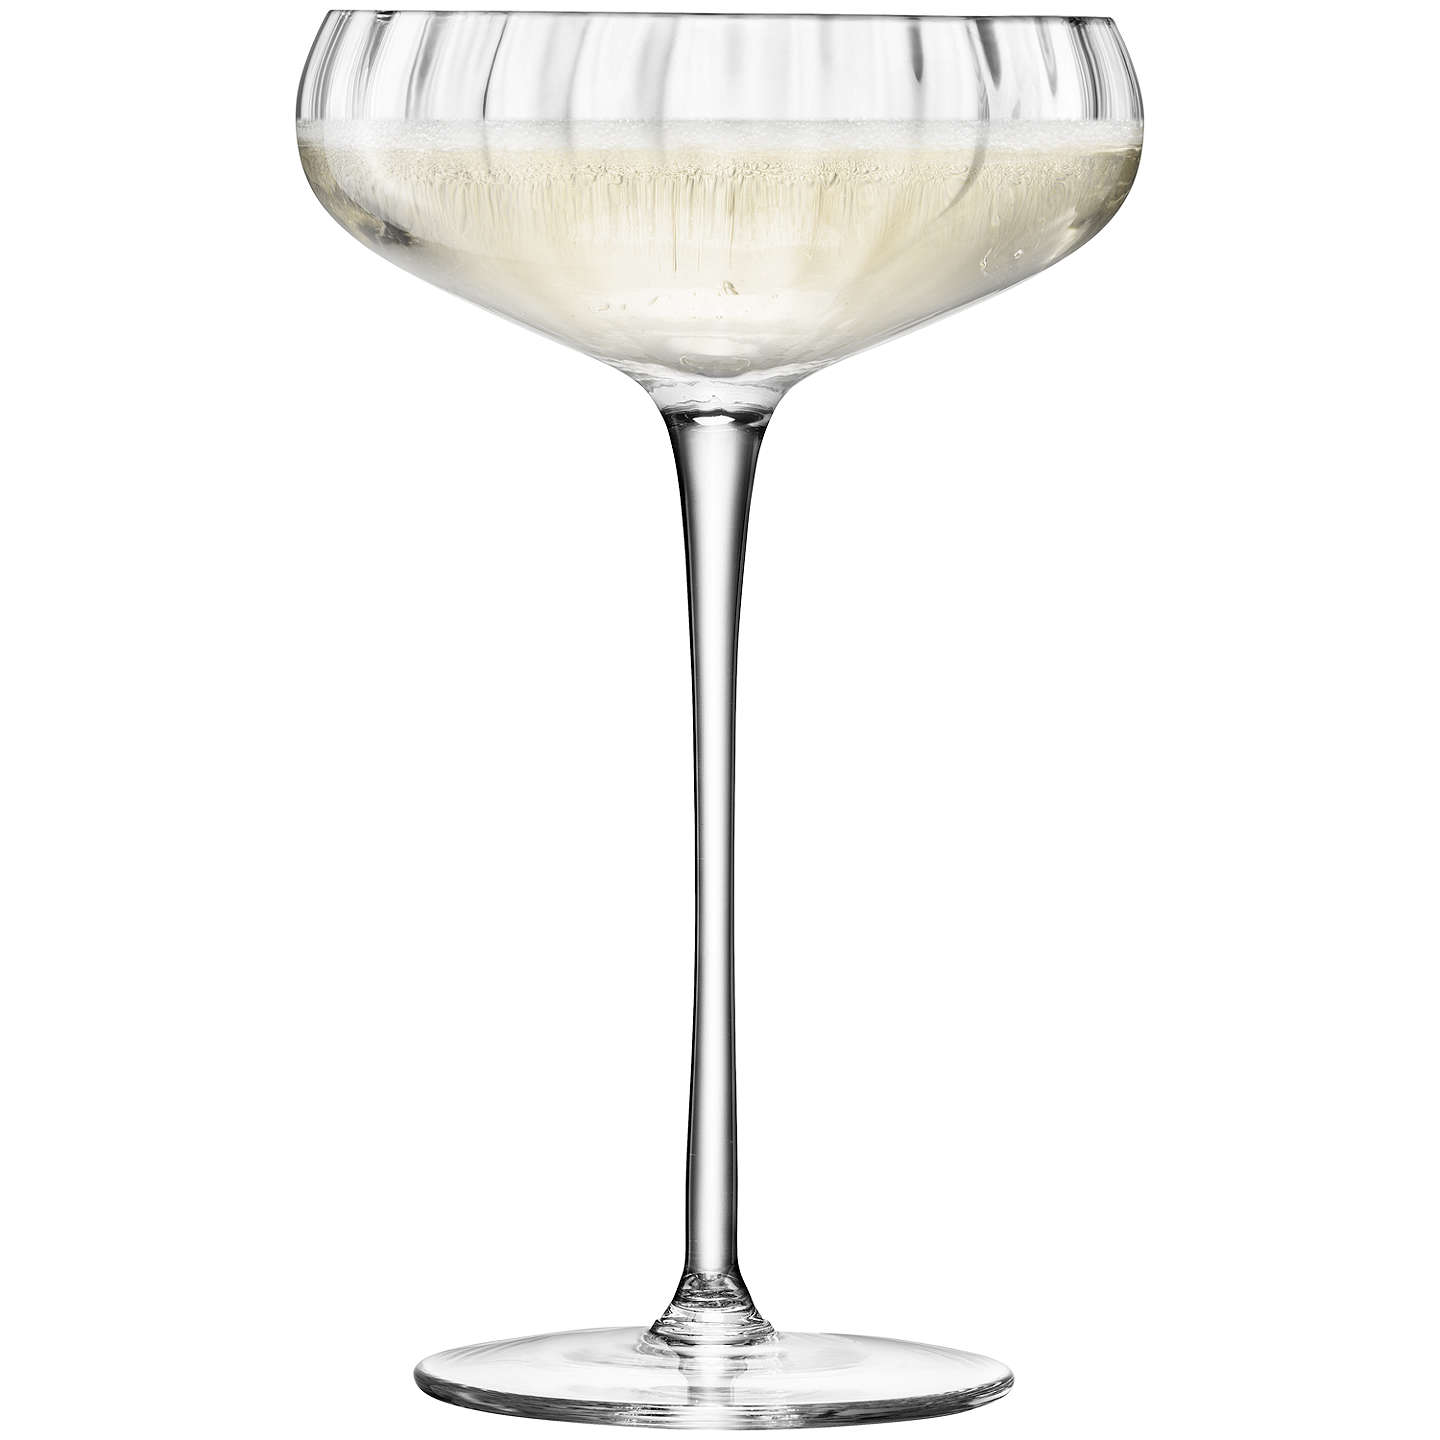 lsa international aurelia glass champagne saucers 300ml set of 4 at john lewis. Black Bedroom Furniture Sets. Home Design Ideas